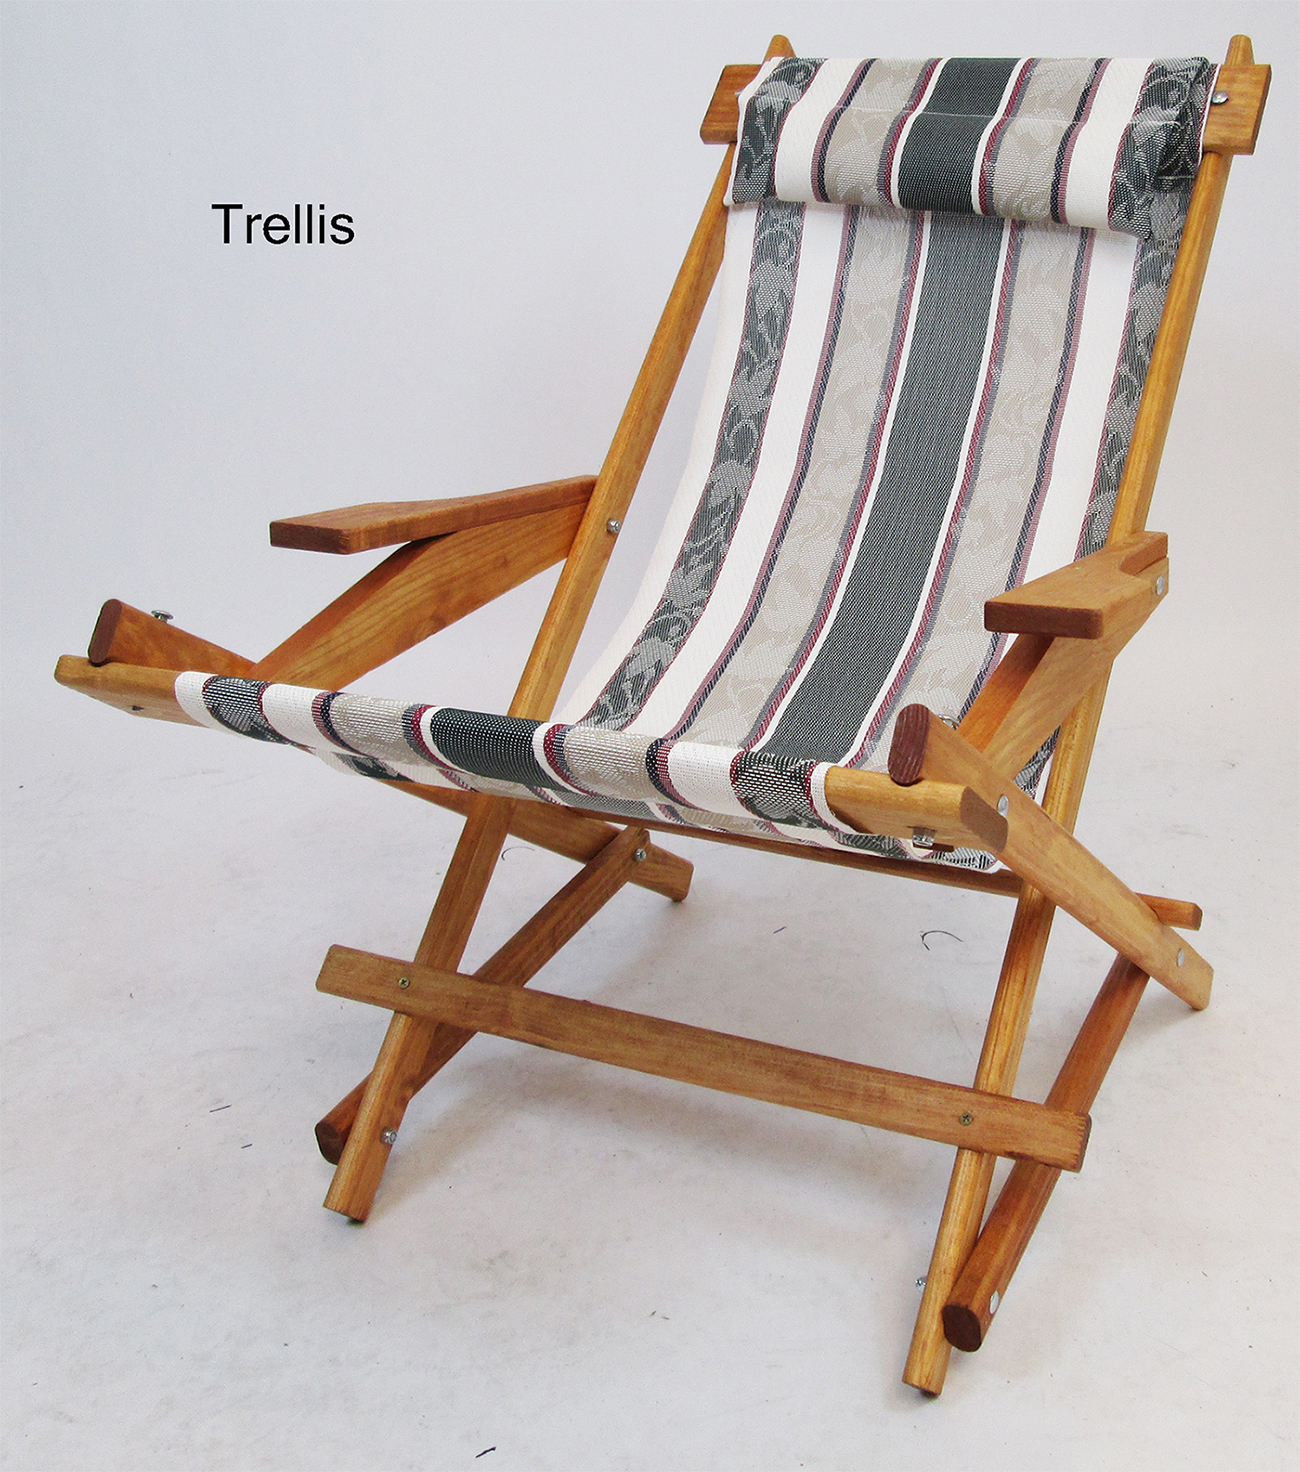 Wood Wooden Folding Rocking Chair Plans PDF Plans